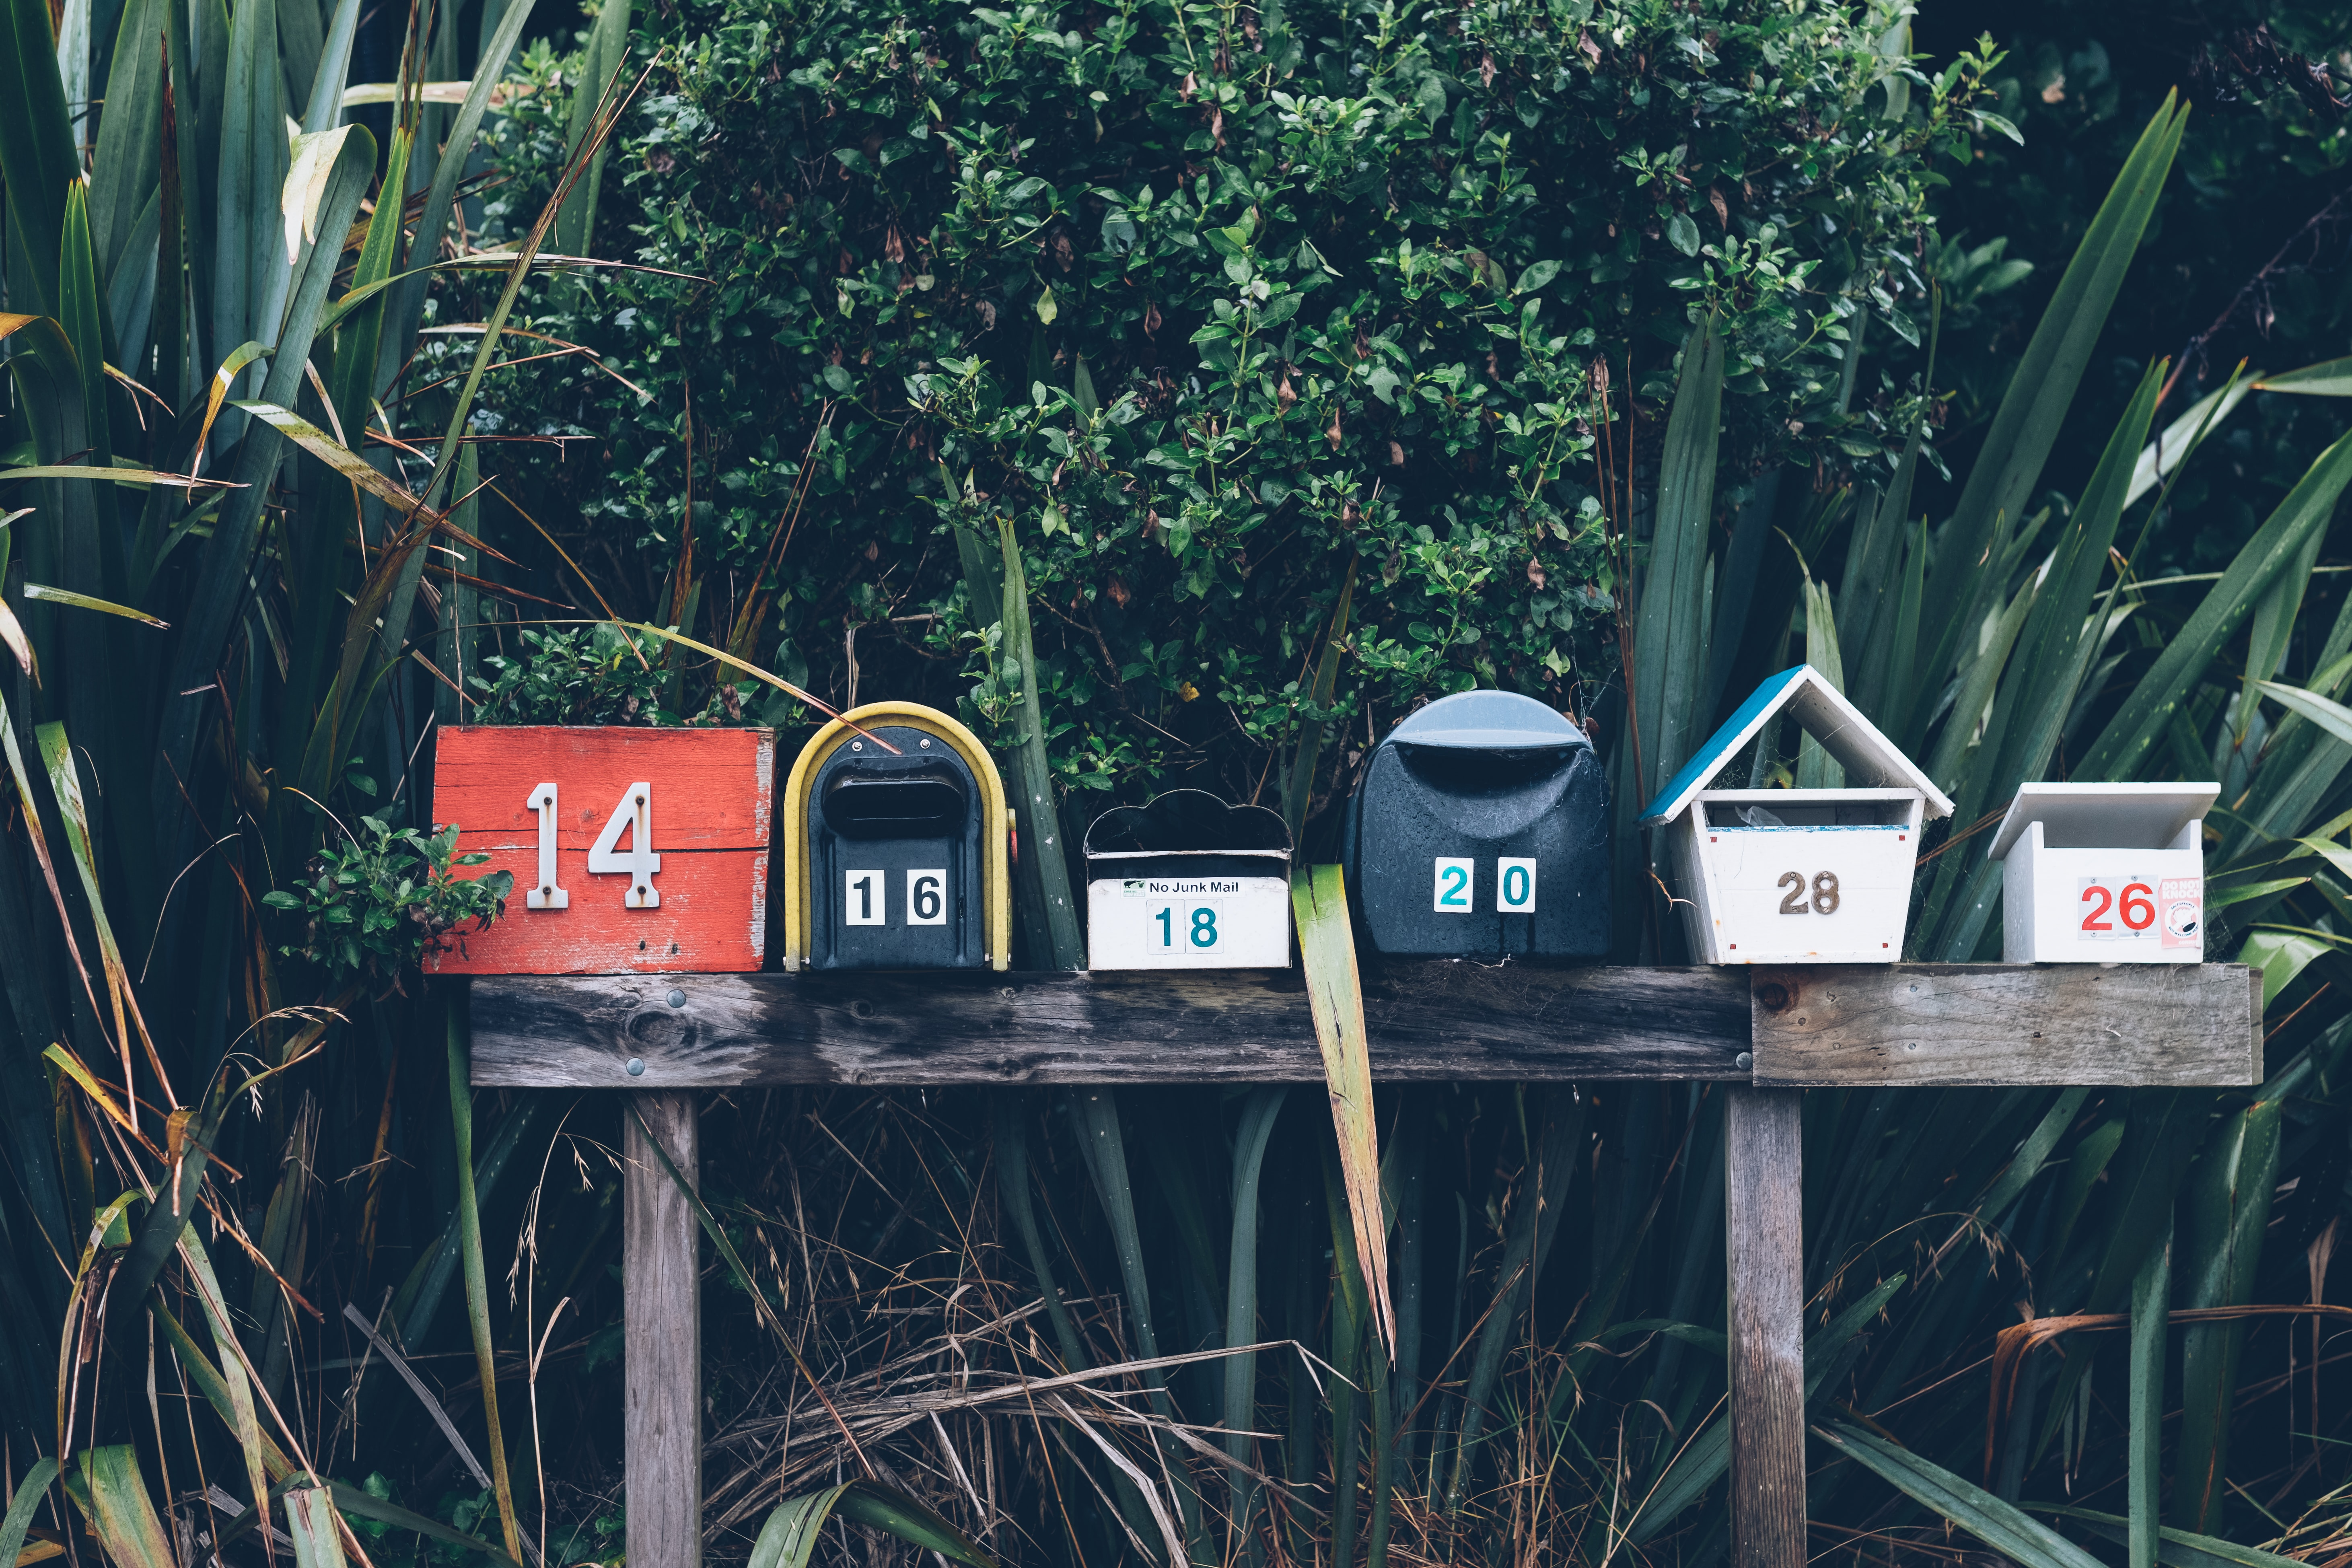 Several mailboxes on a post surrounded by